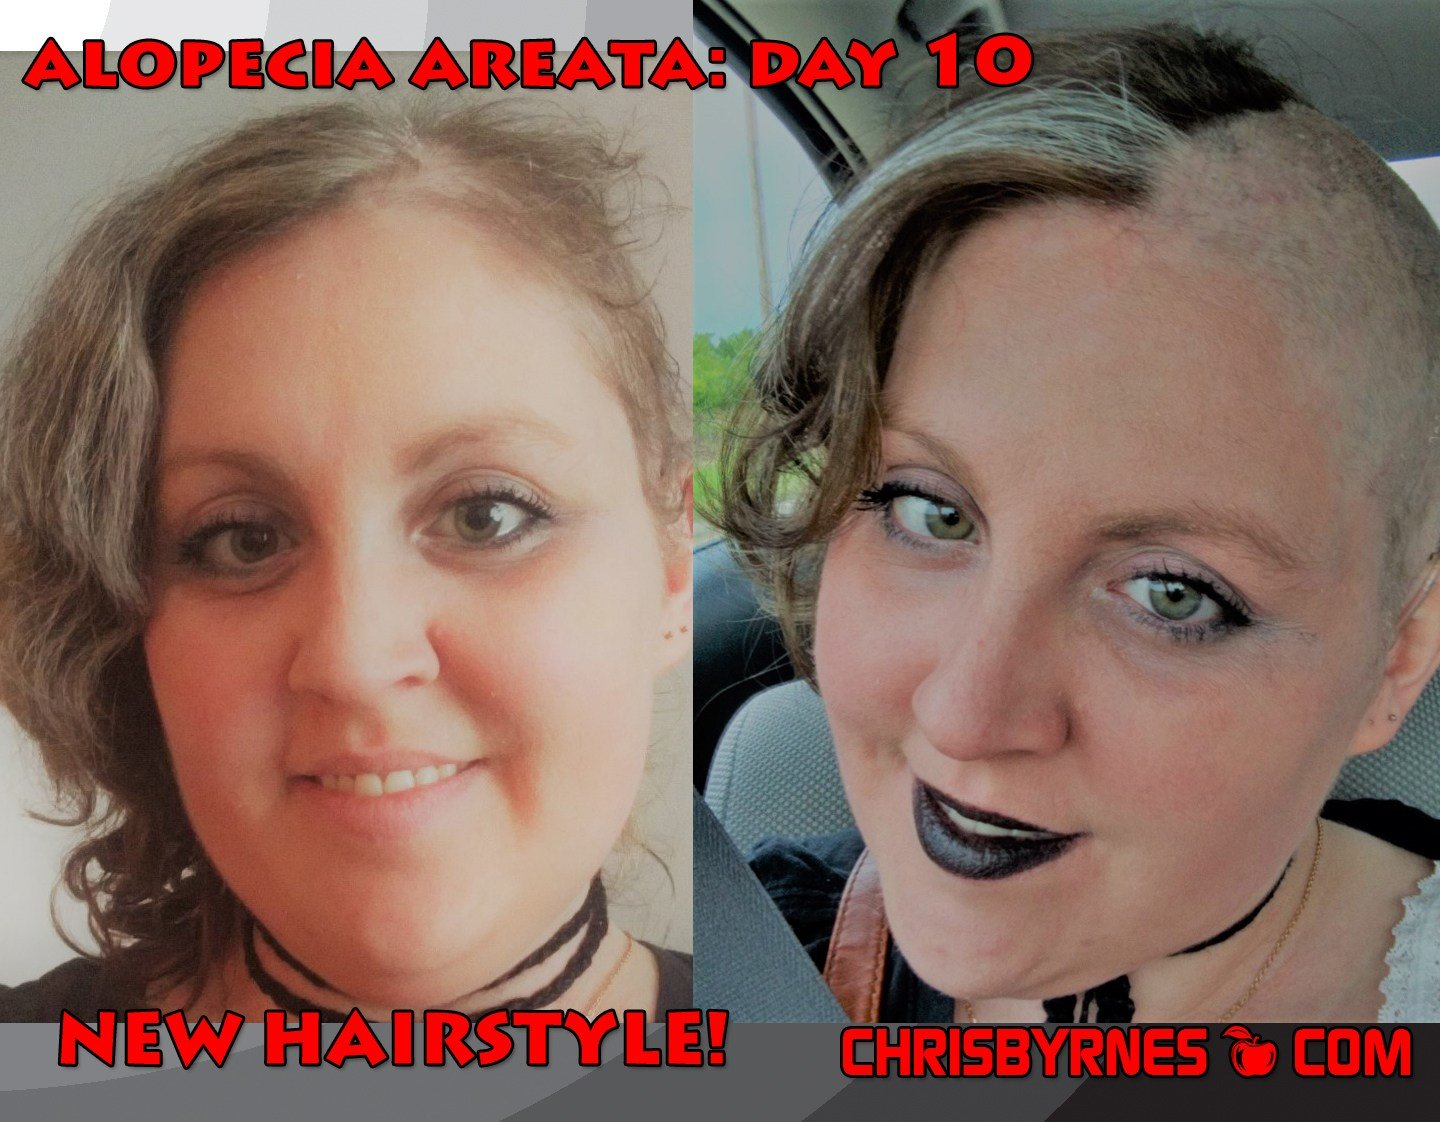 The Best New Hair Style Alopecia Areata Day 10 Chrisbyrnes Com Pictures